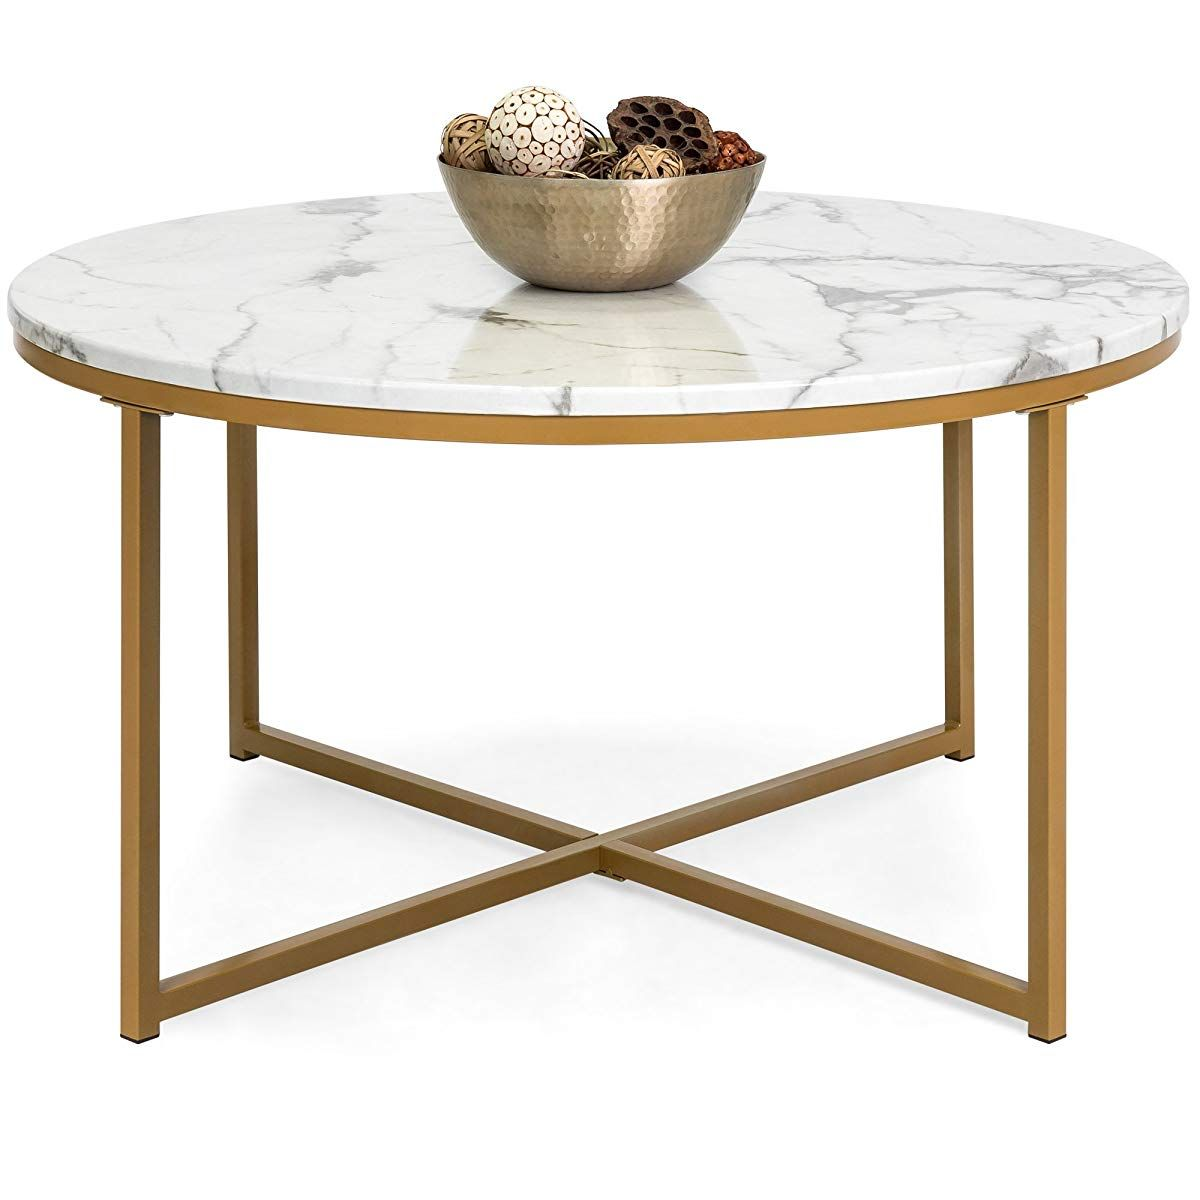 round faux marble top coffee accent side table mahogany nest tables hampton bay furniture website high bar runner and placemats set battery run lamps coastal beach decor home